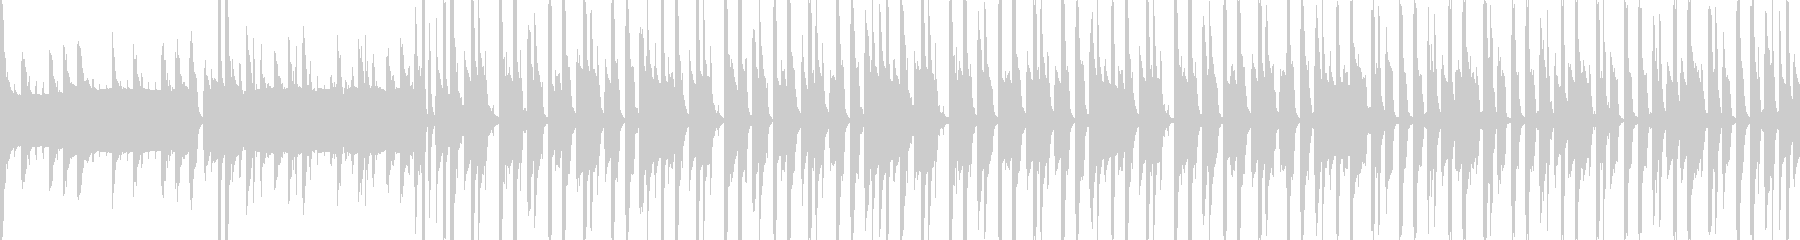 Play in the woods (Loop compatible)'s unreproduced waveform